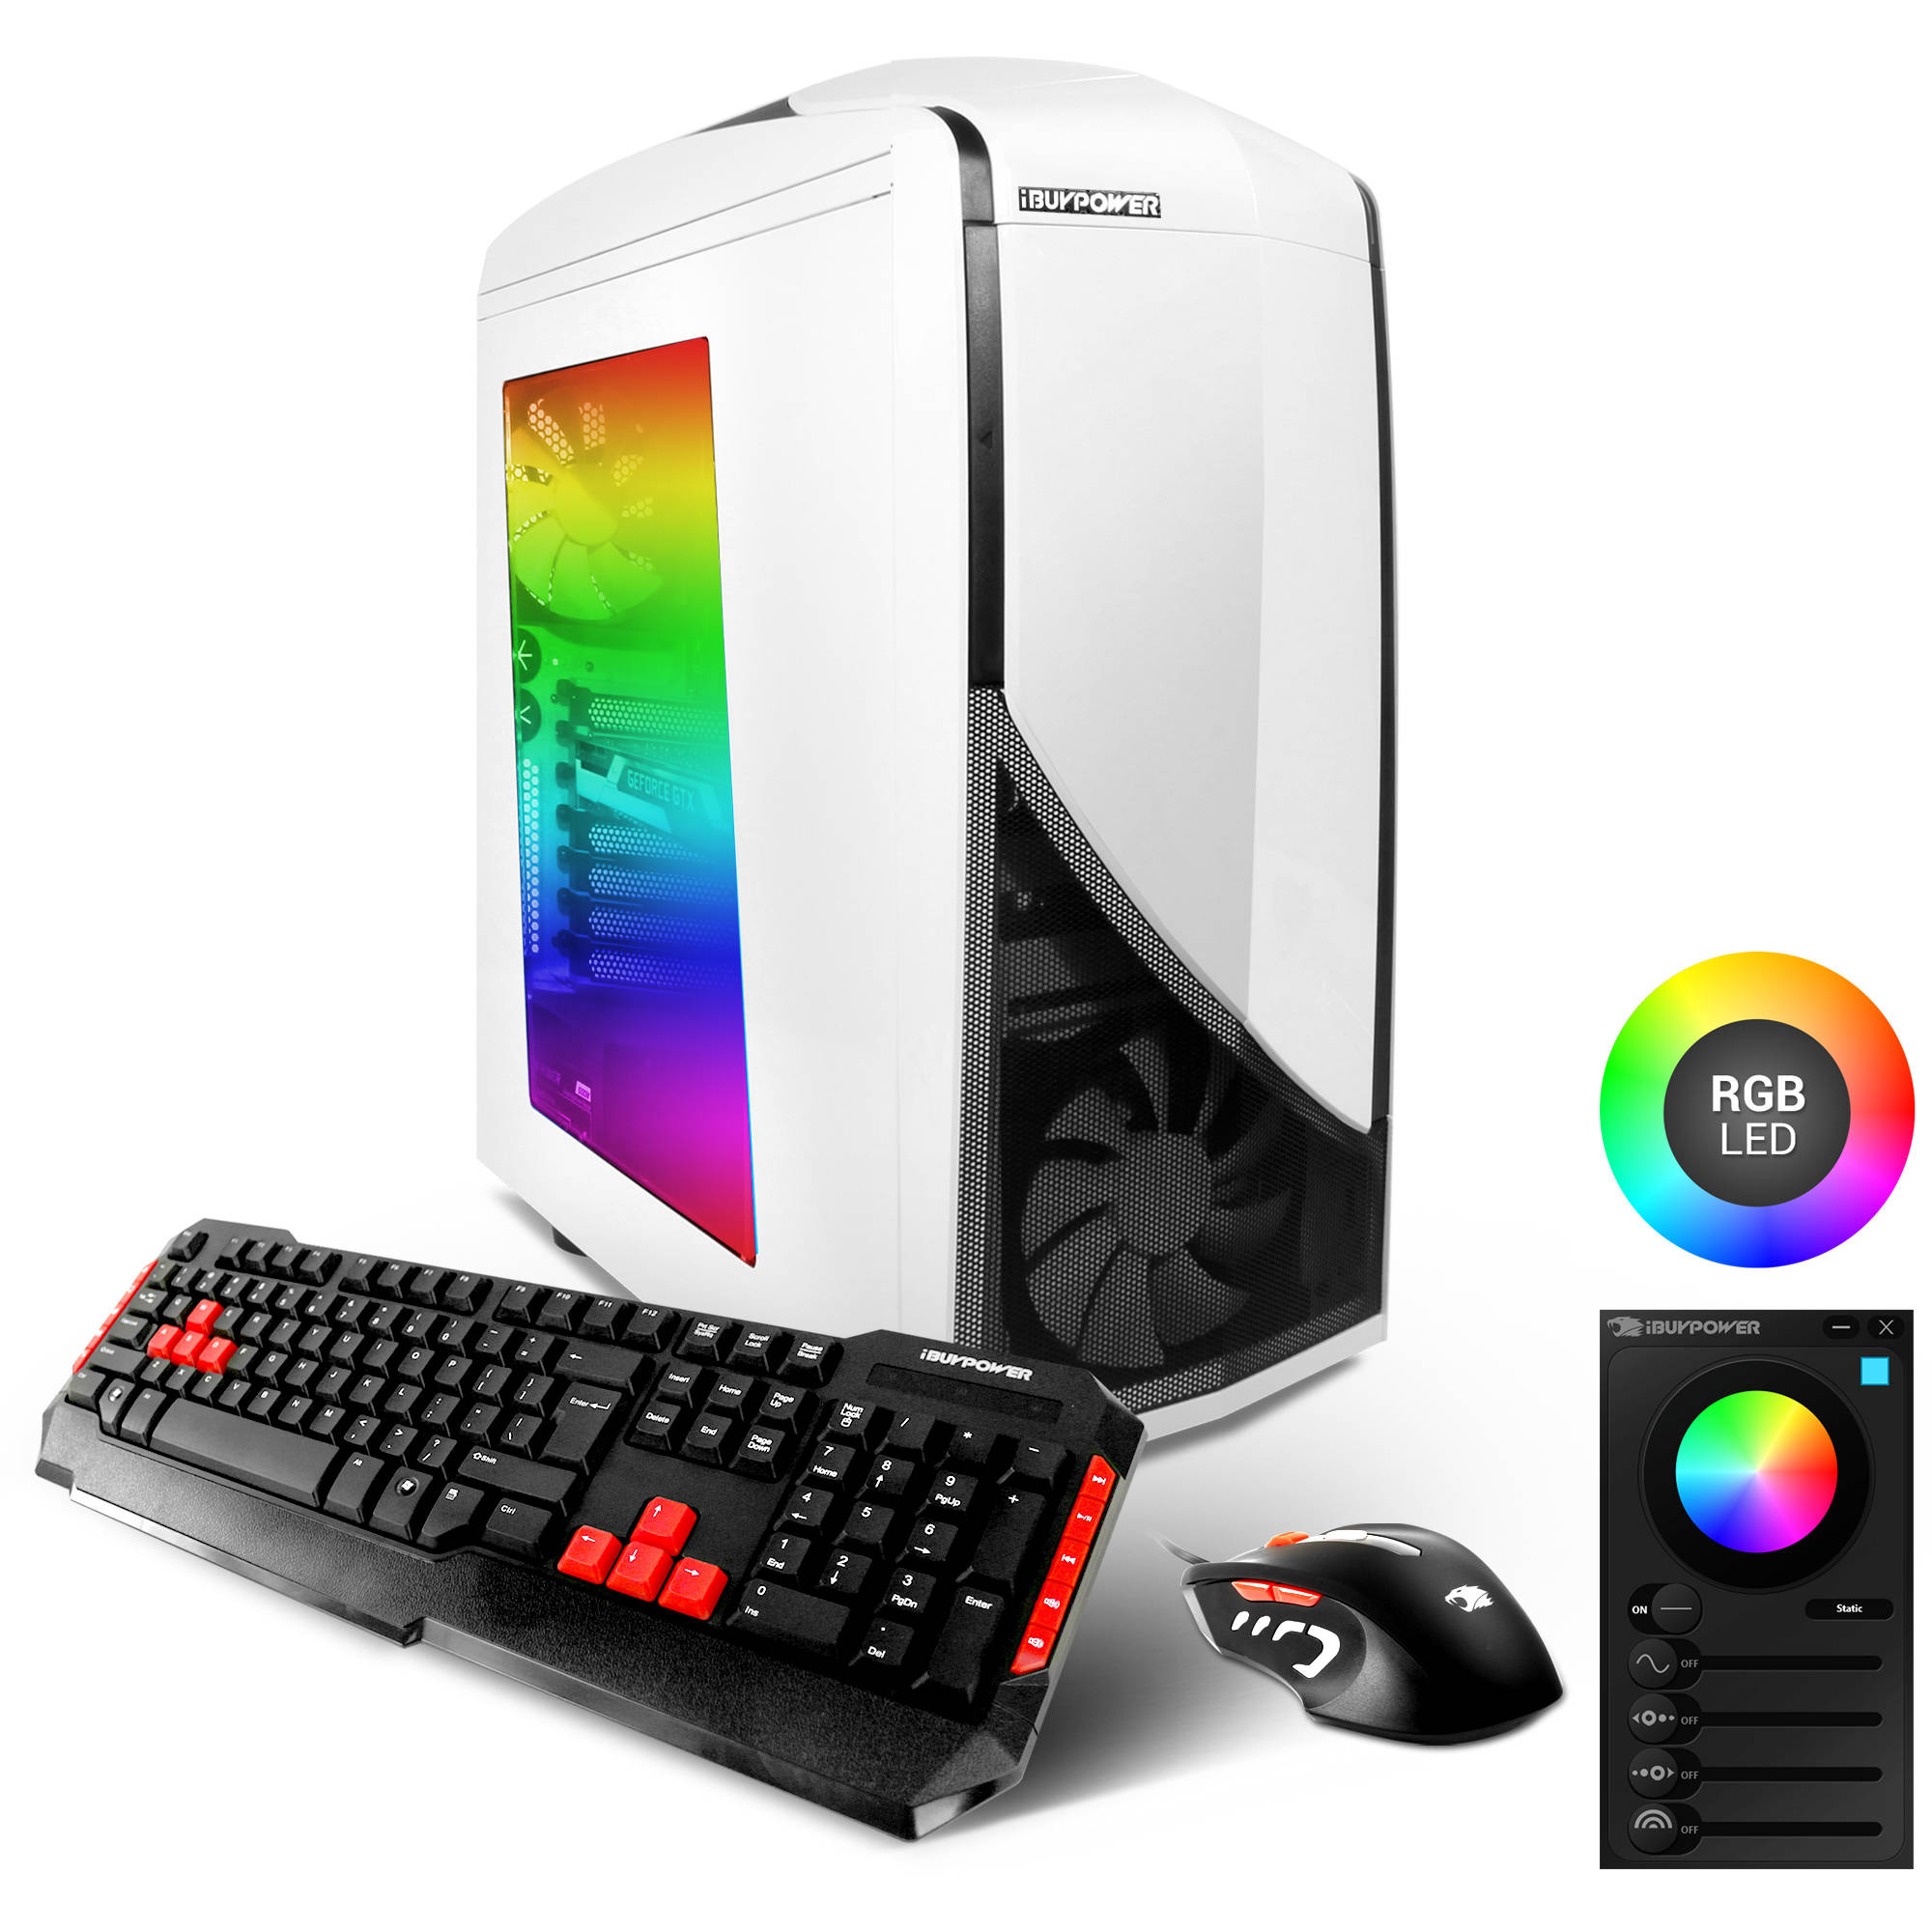 Refurbished iBuyPower WMO3 Gaming Desktop PC with Intel Core i5-6402P Processor, 8GB Memory, 1TB Hard Drive, 120GB Solid State Drive and Windows 10 Home (Monitor Not Included)